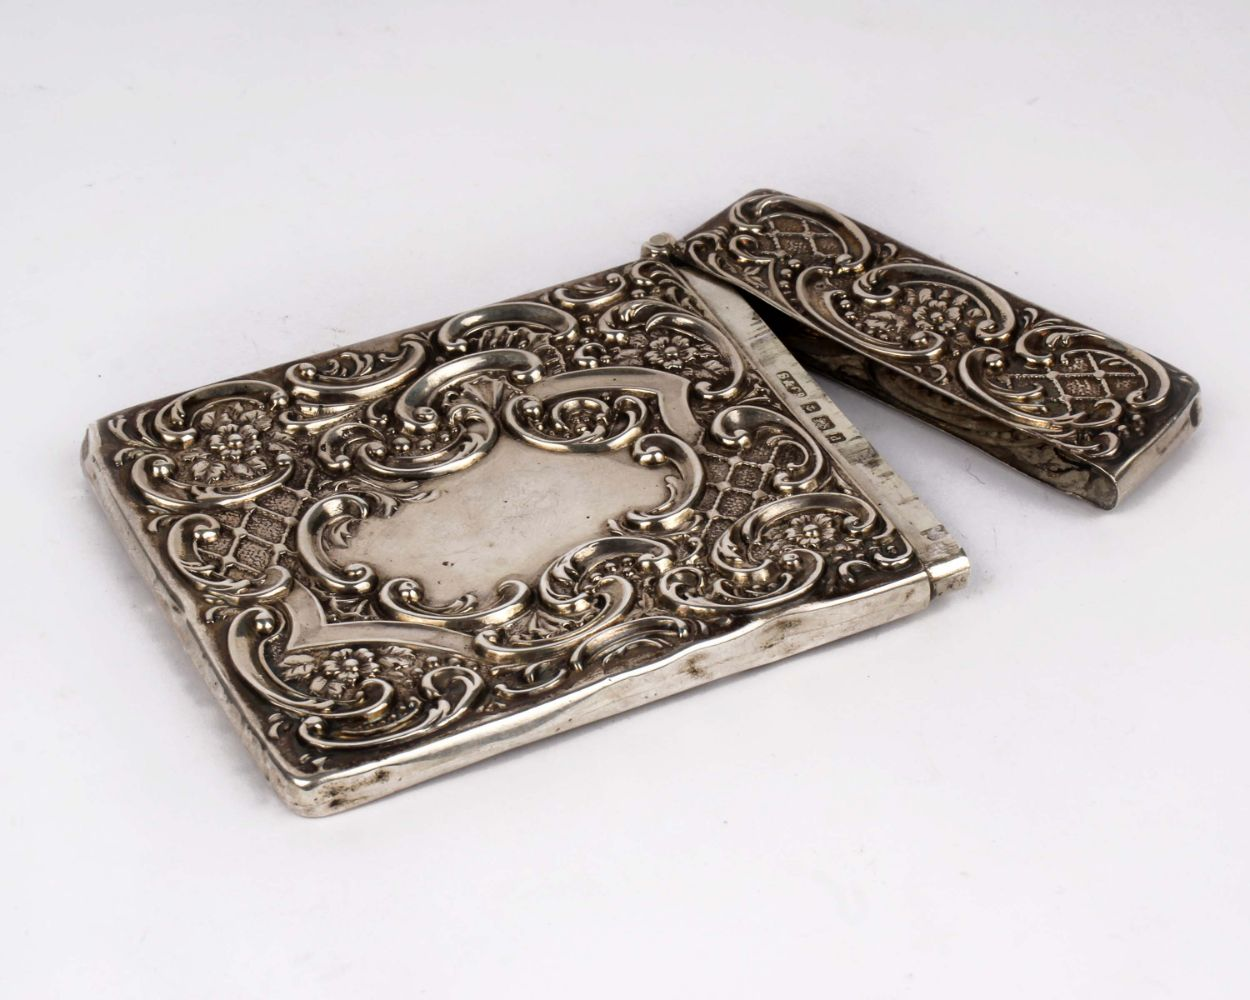 Jewellery, Silver, Antiques & Furnishings